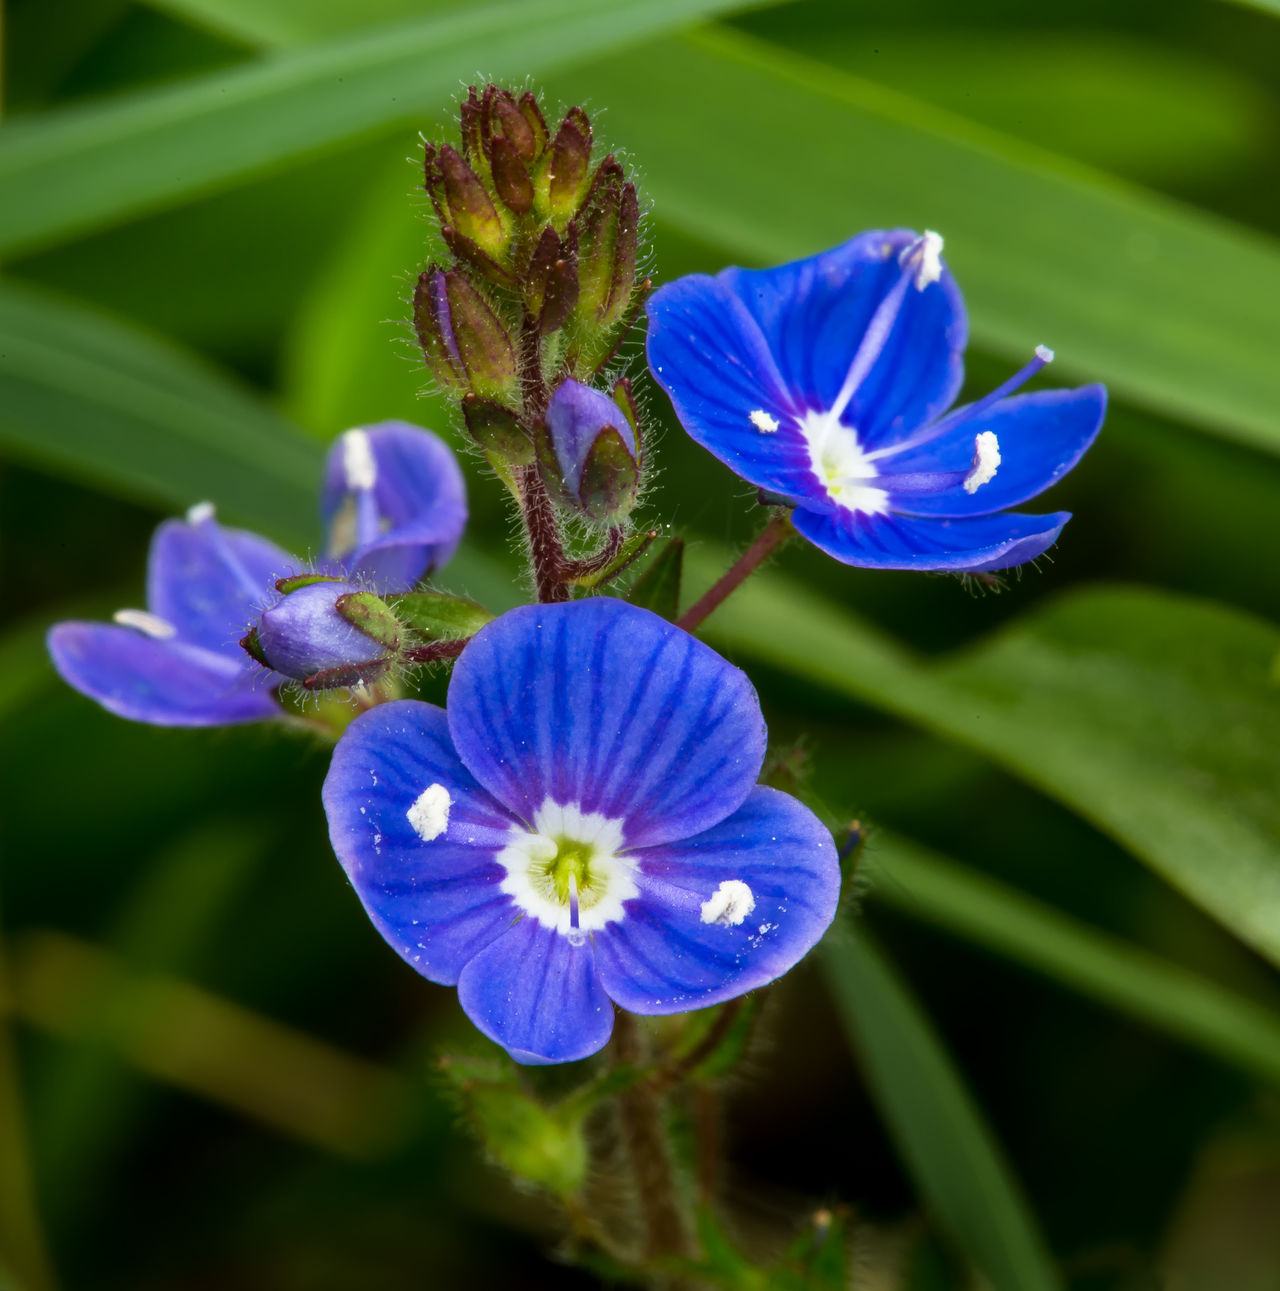 Wild Blue Flowers. Beauty In Nature Blooming Blue Close-up Day Flower Flower Head Fragility Freshness Growth Nature No People Outdoors Petal Plant Purple Spring Flowers Wild